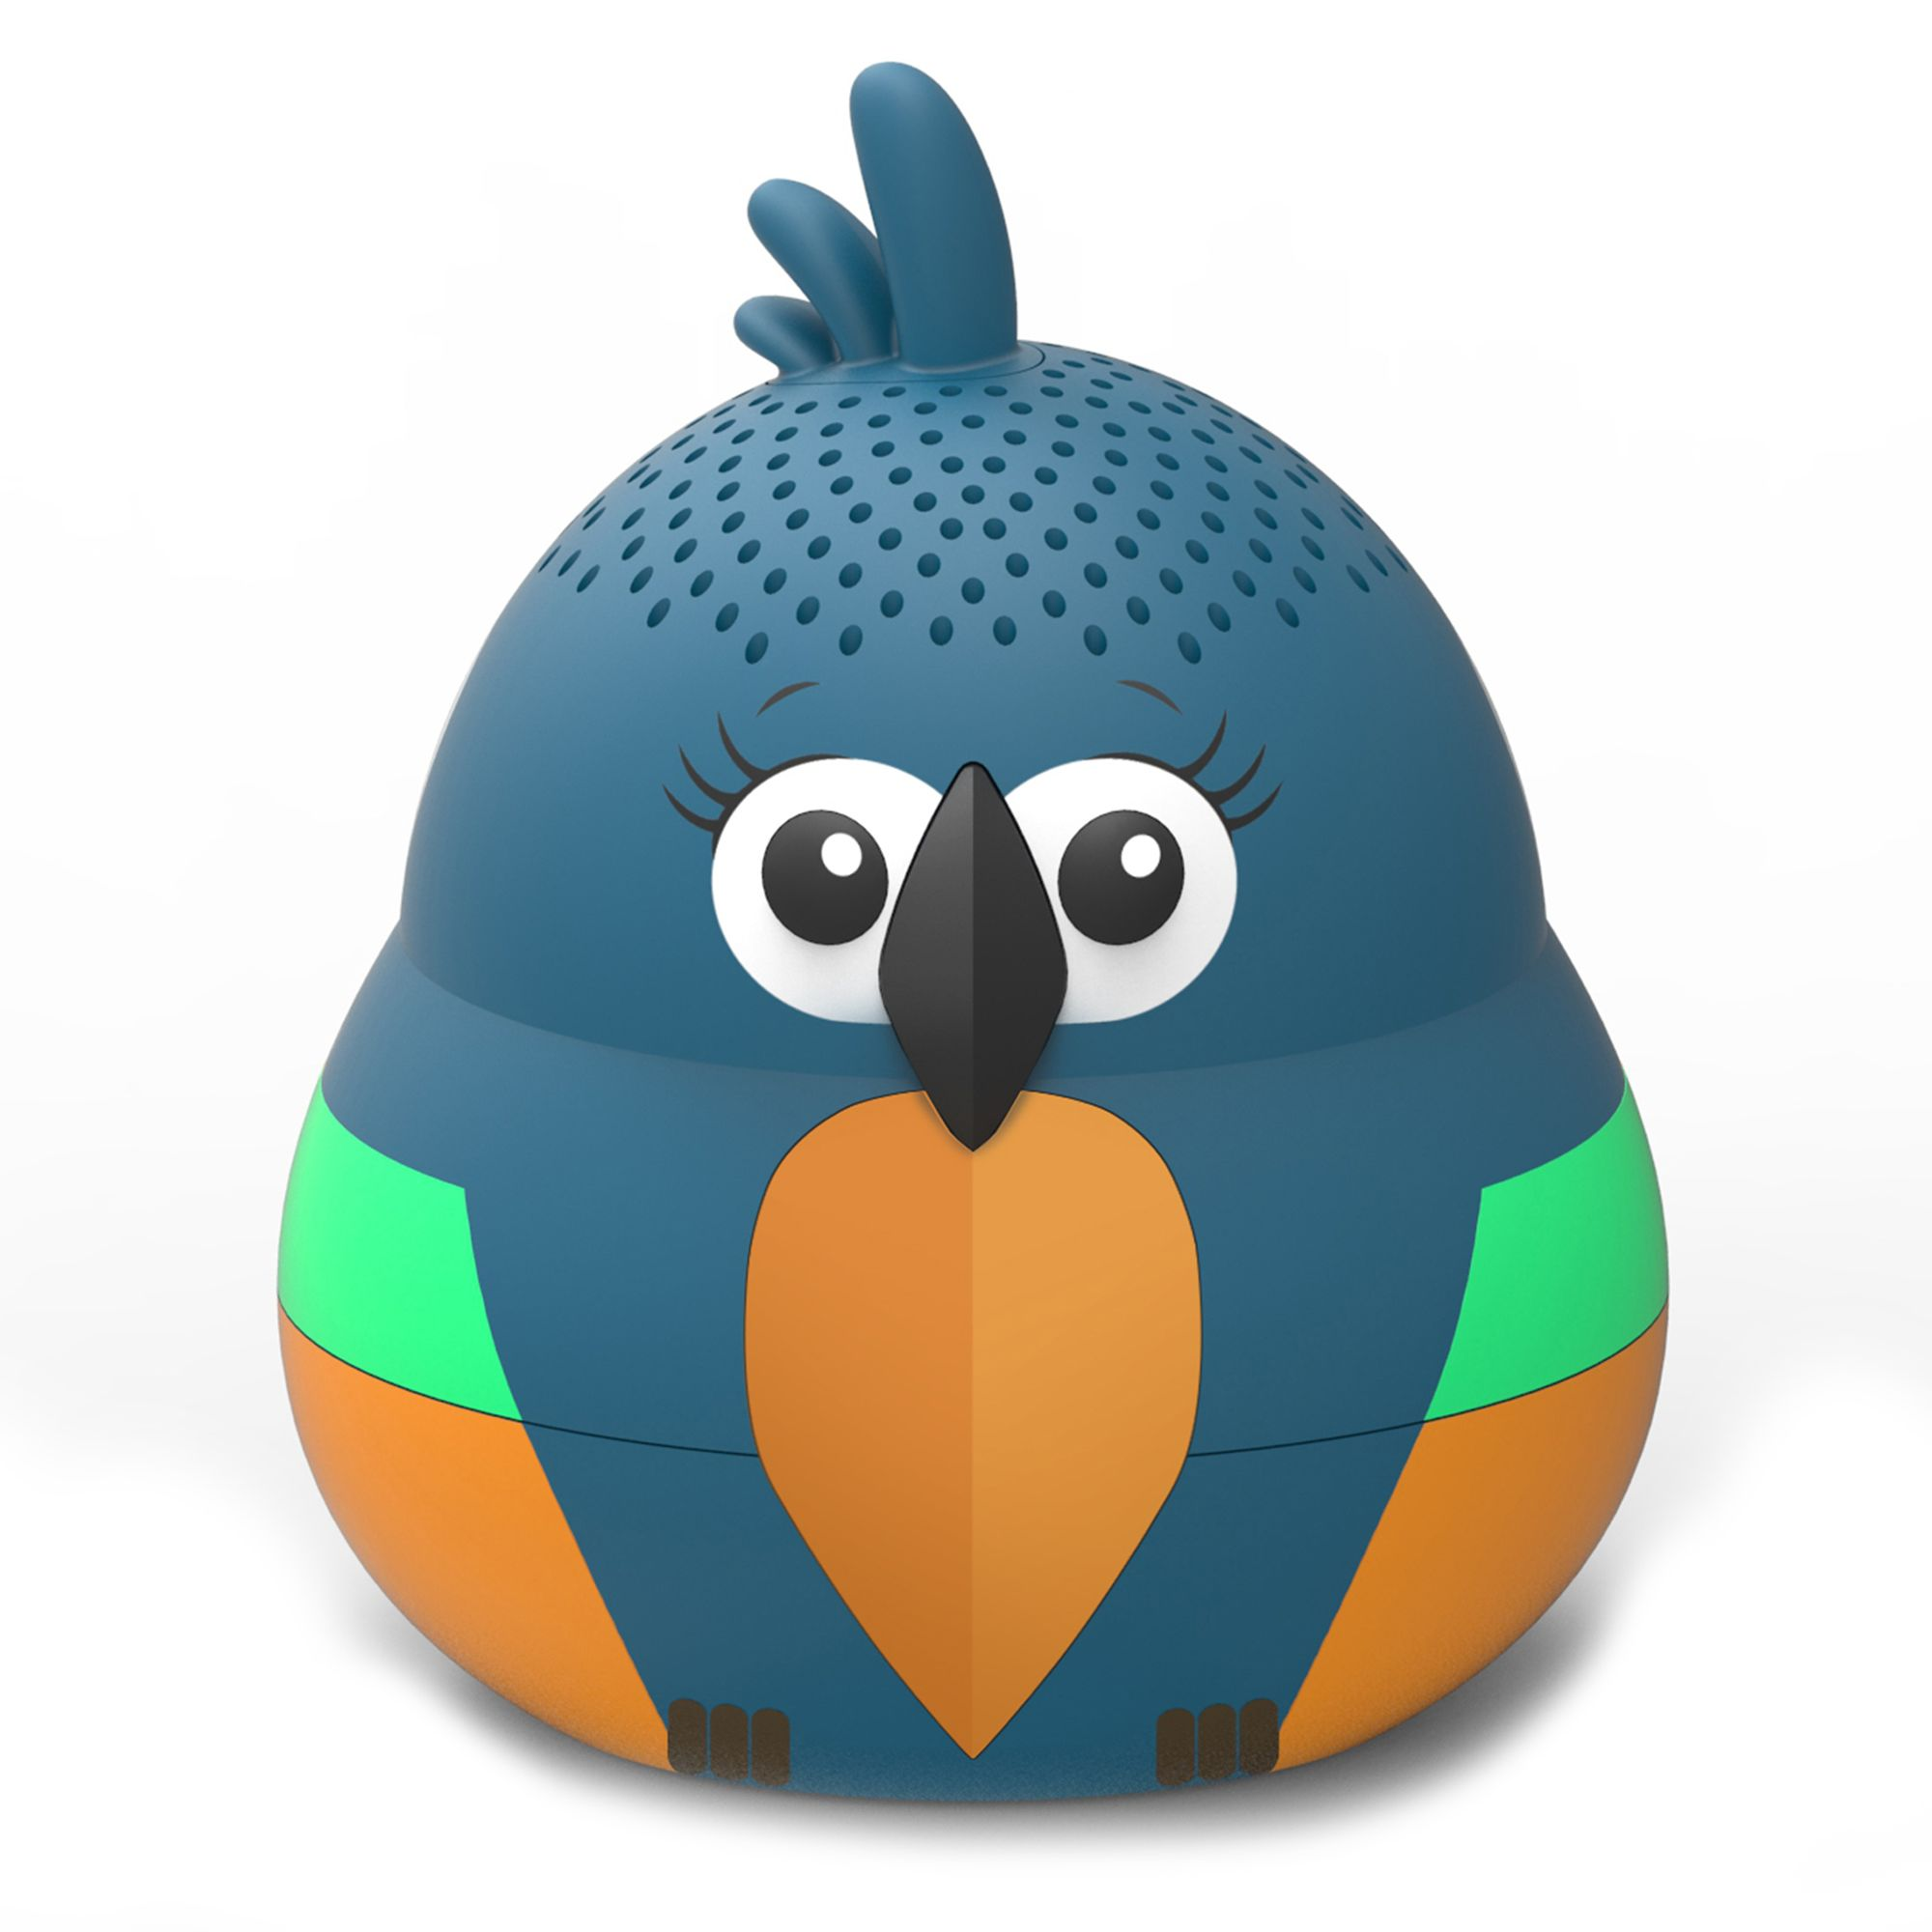 G.O.A.T. Pet Products Bird Speaker 5275536